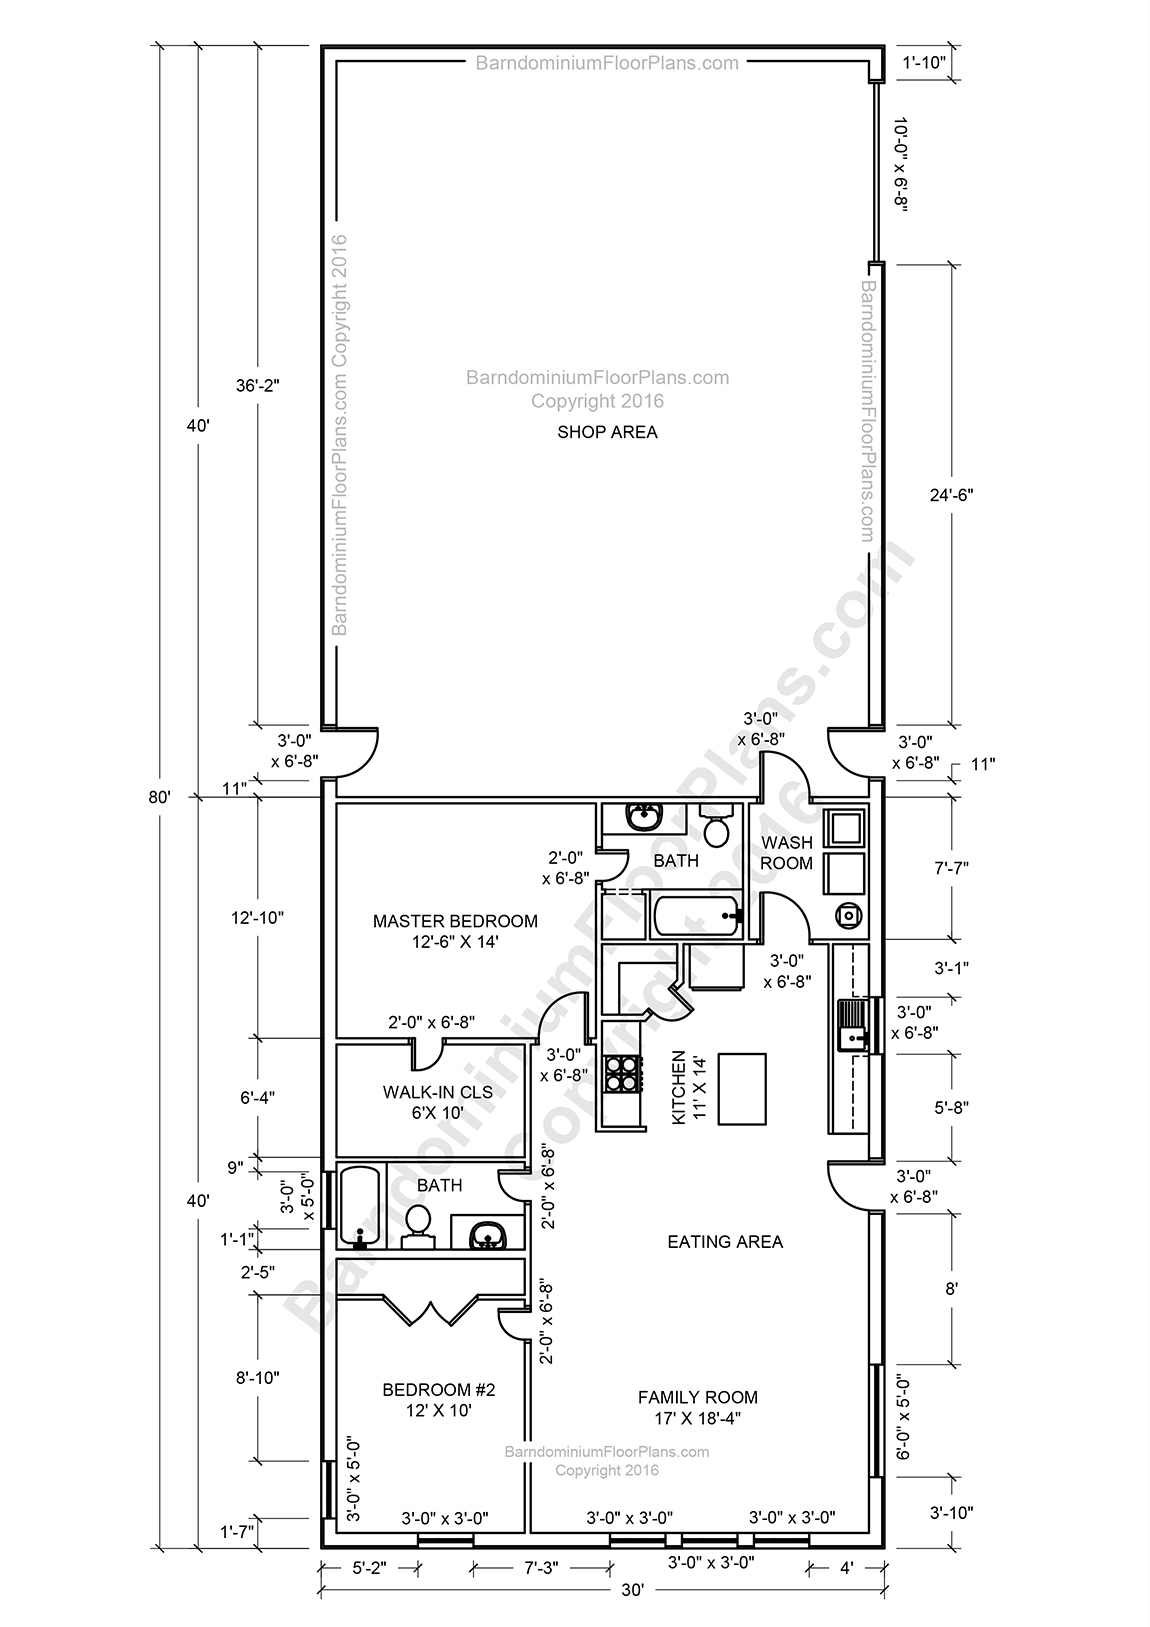 Barndominium floor plans pole barn house plans and metal 30 x 40 floor plans